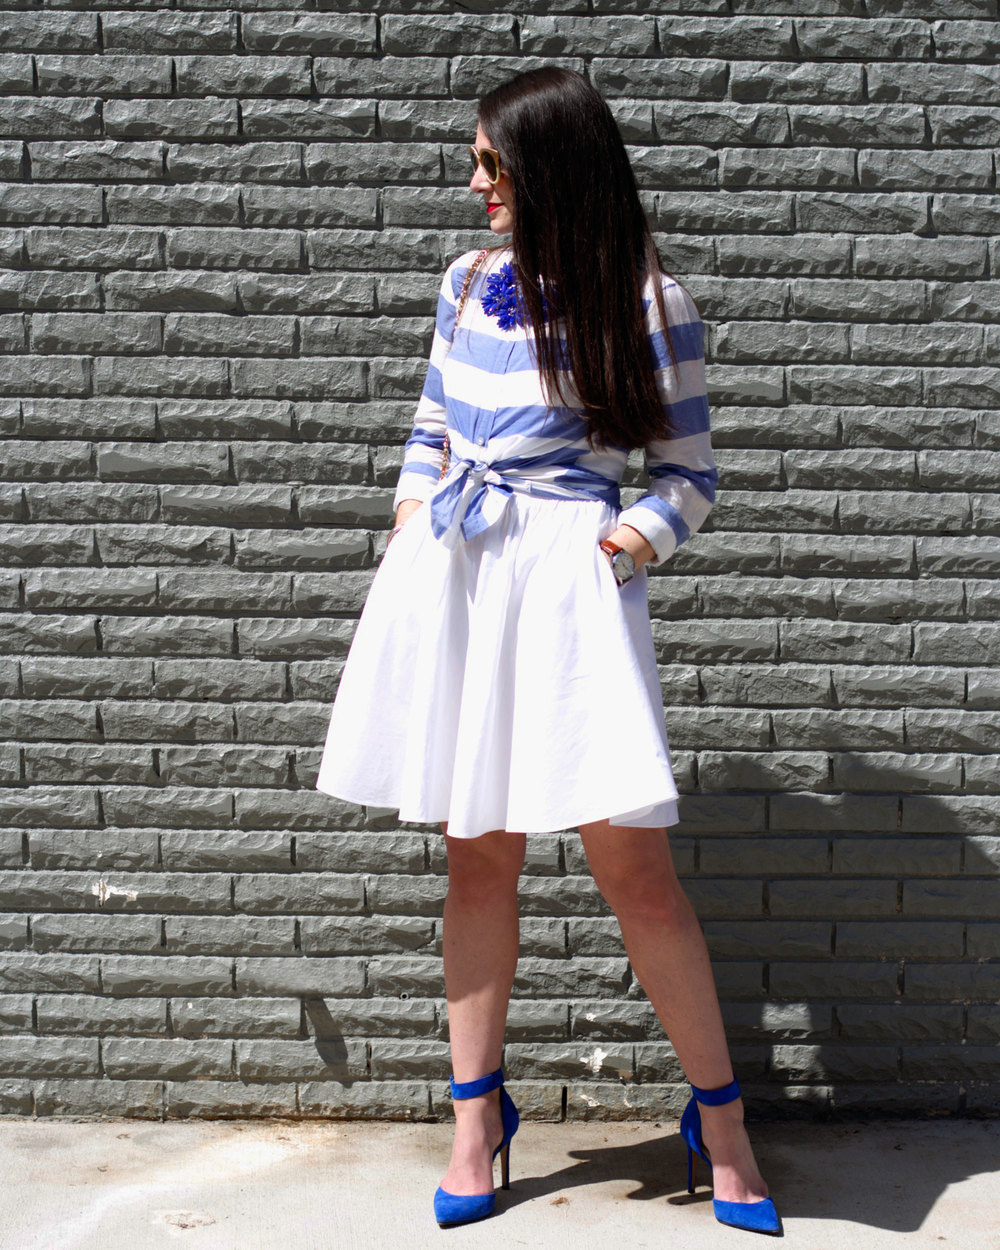 Easter Outfit, Button-Up Blouse over Dress, Dress as a Skirt, Apron Dress, Tory Burch Sunglasses, Jessica Simpson Pumps, Blue Suede Shoes, Vintage Chanel Handbag